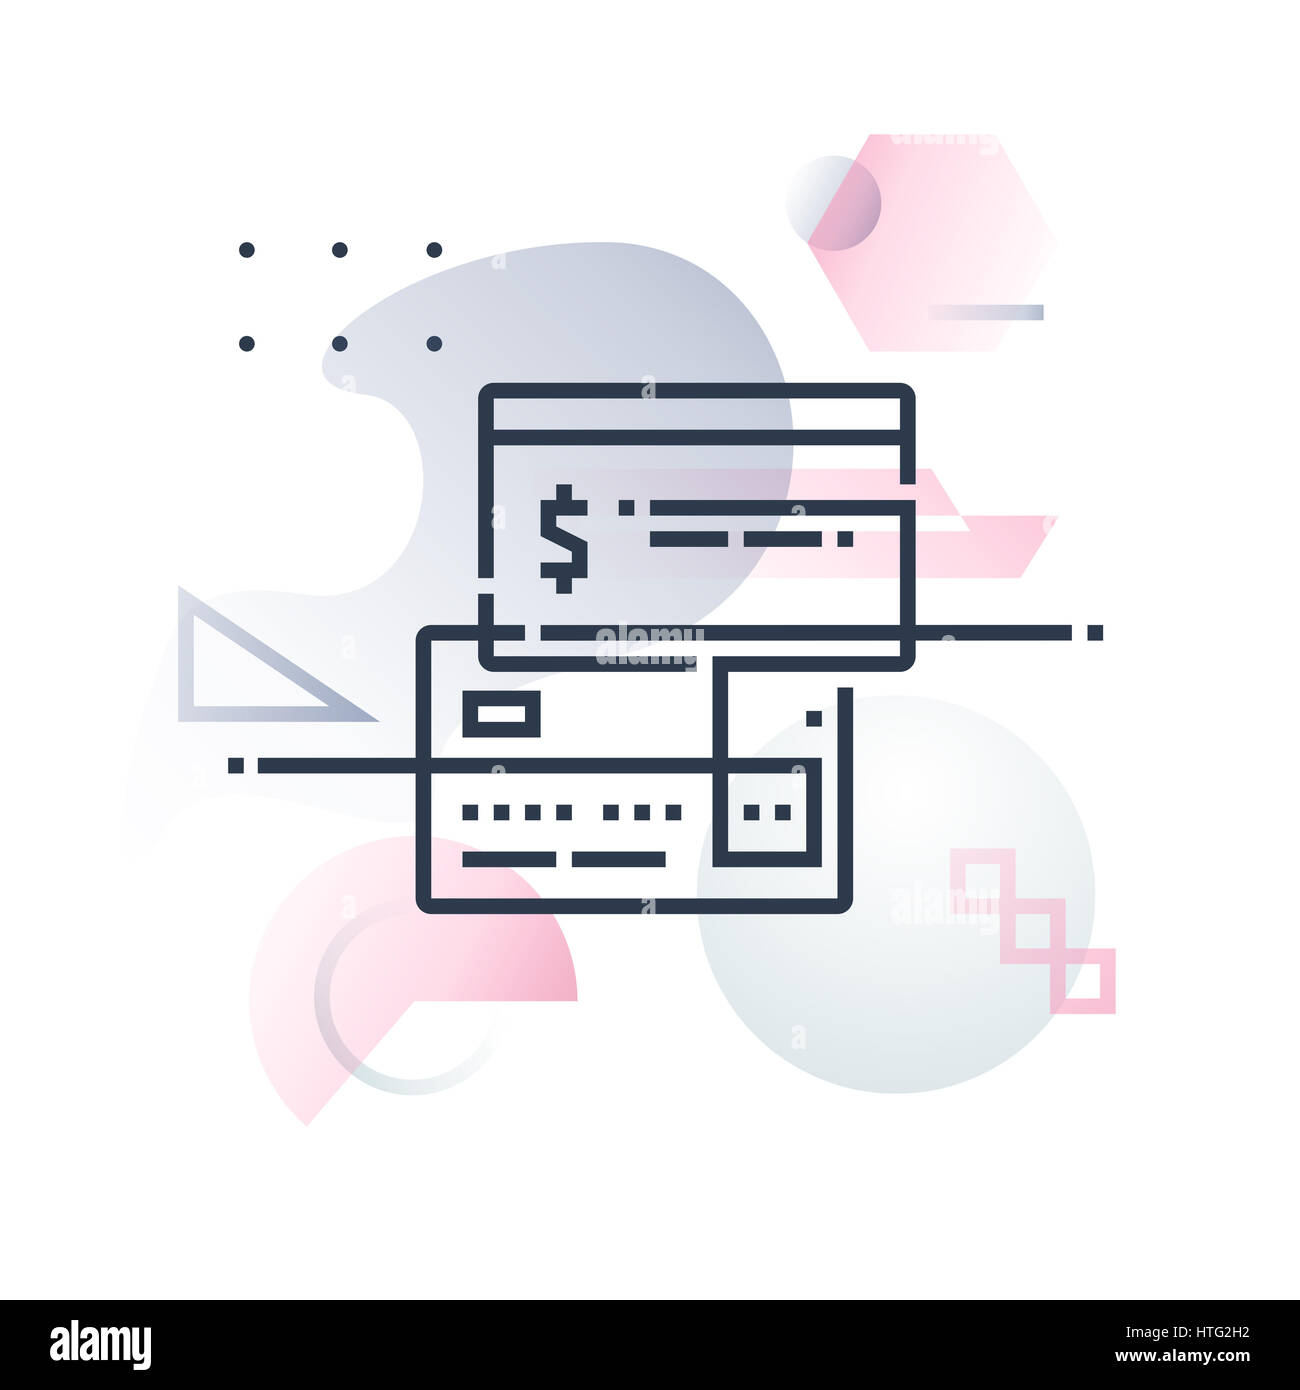 Direct payments, credit card and online money transfer. Abstract illustration concept. - Stock Image